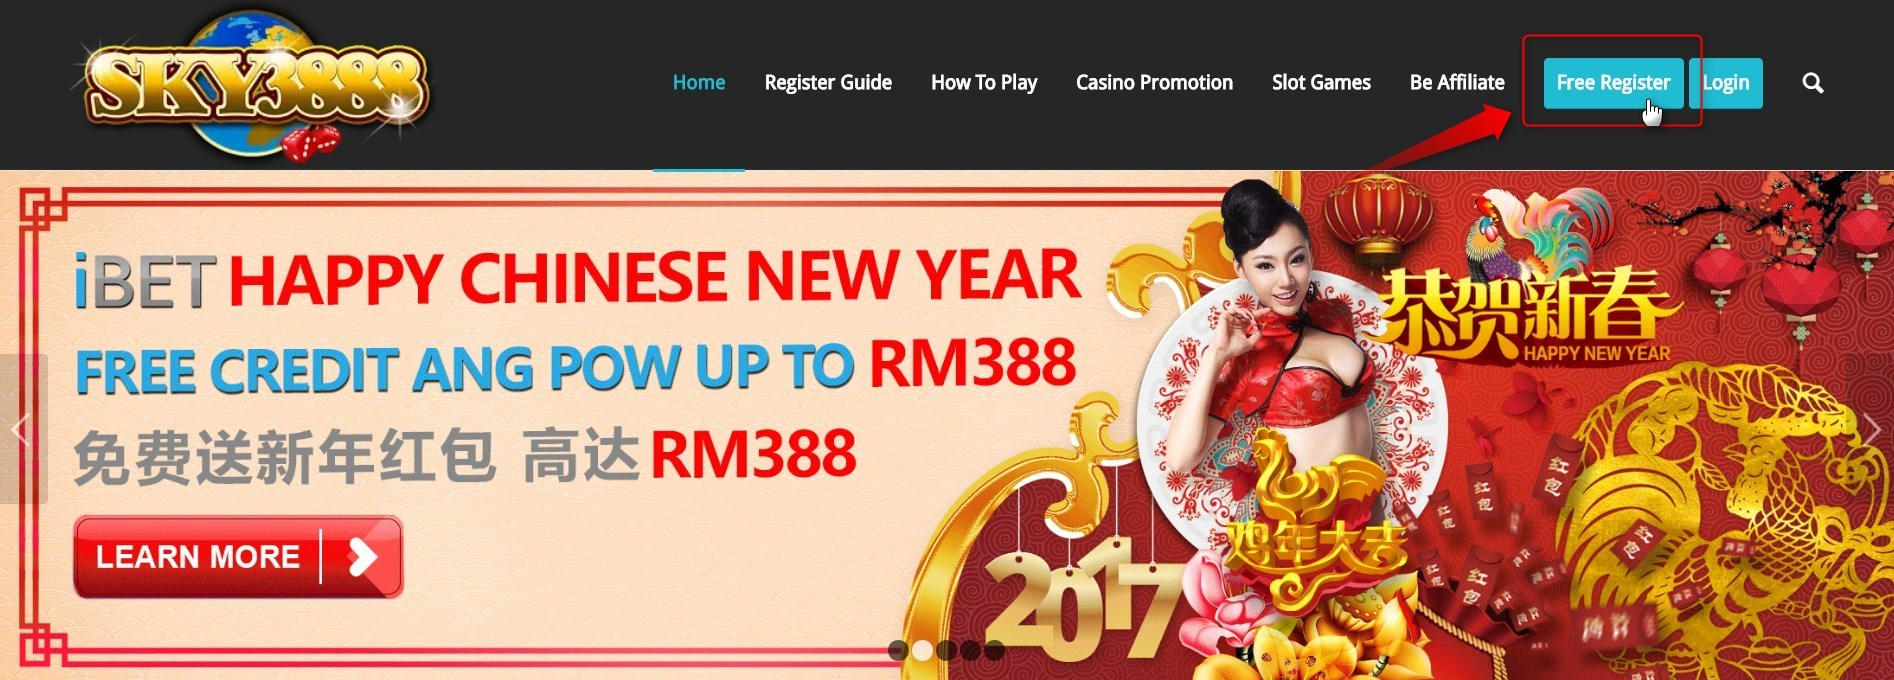 Free Register iBET sky3888a Top Up and Get More Bonus!